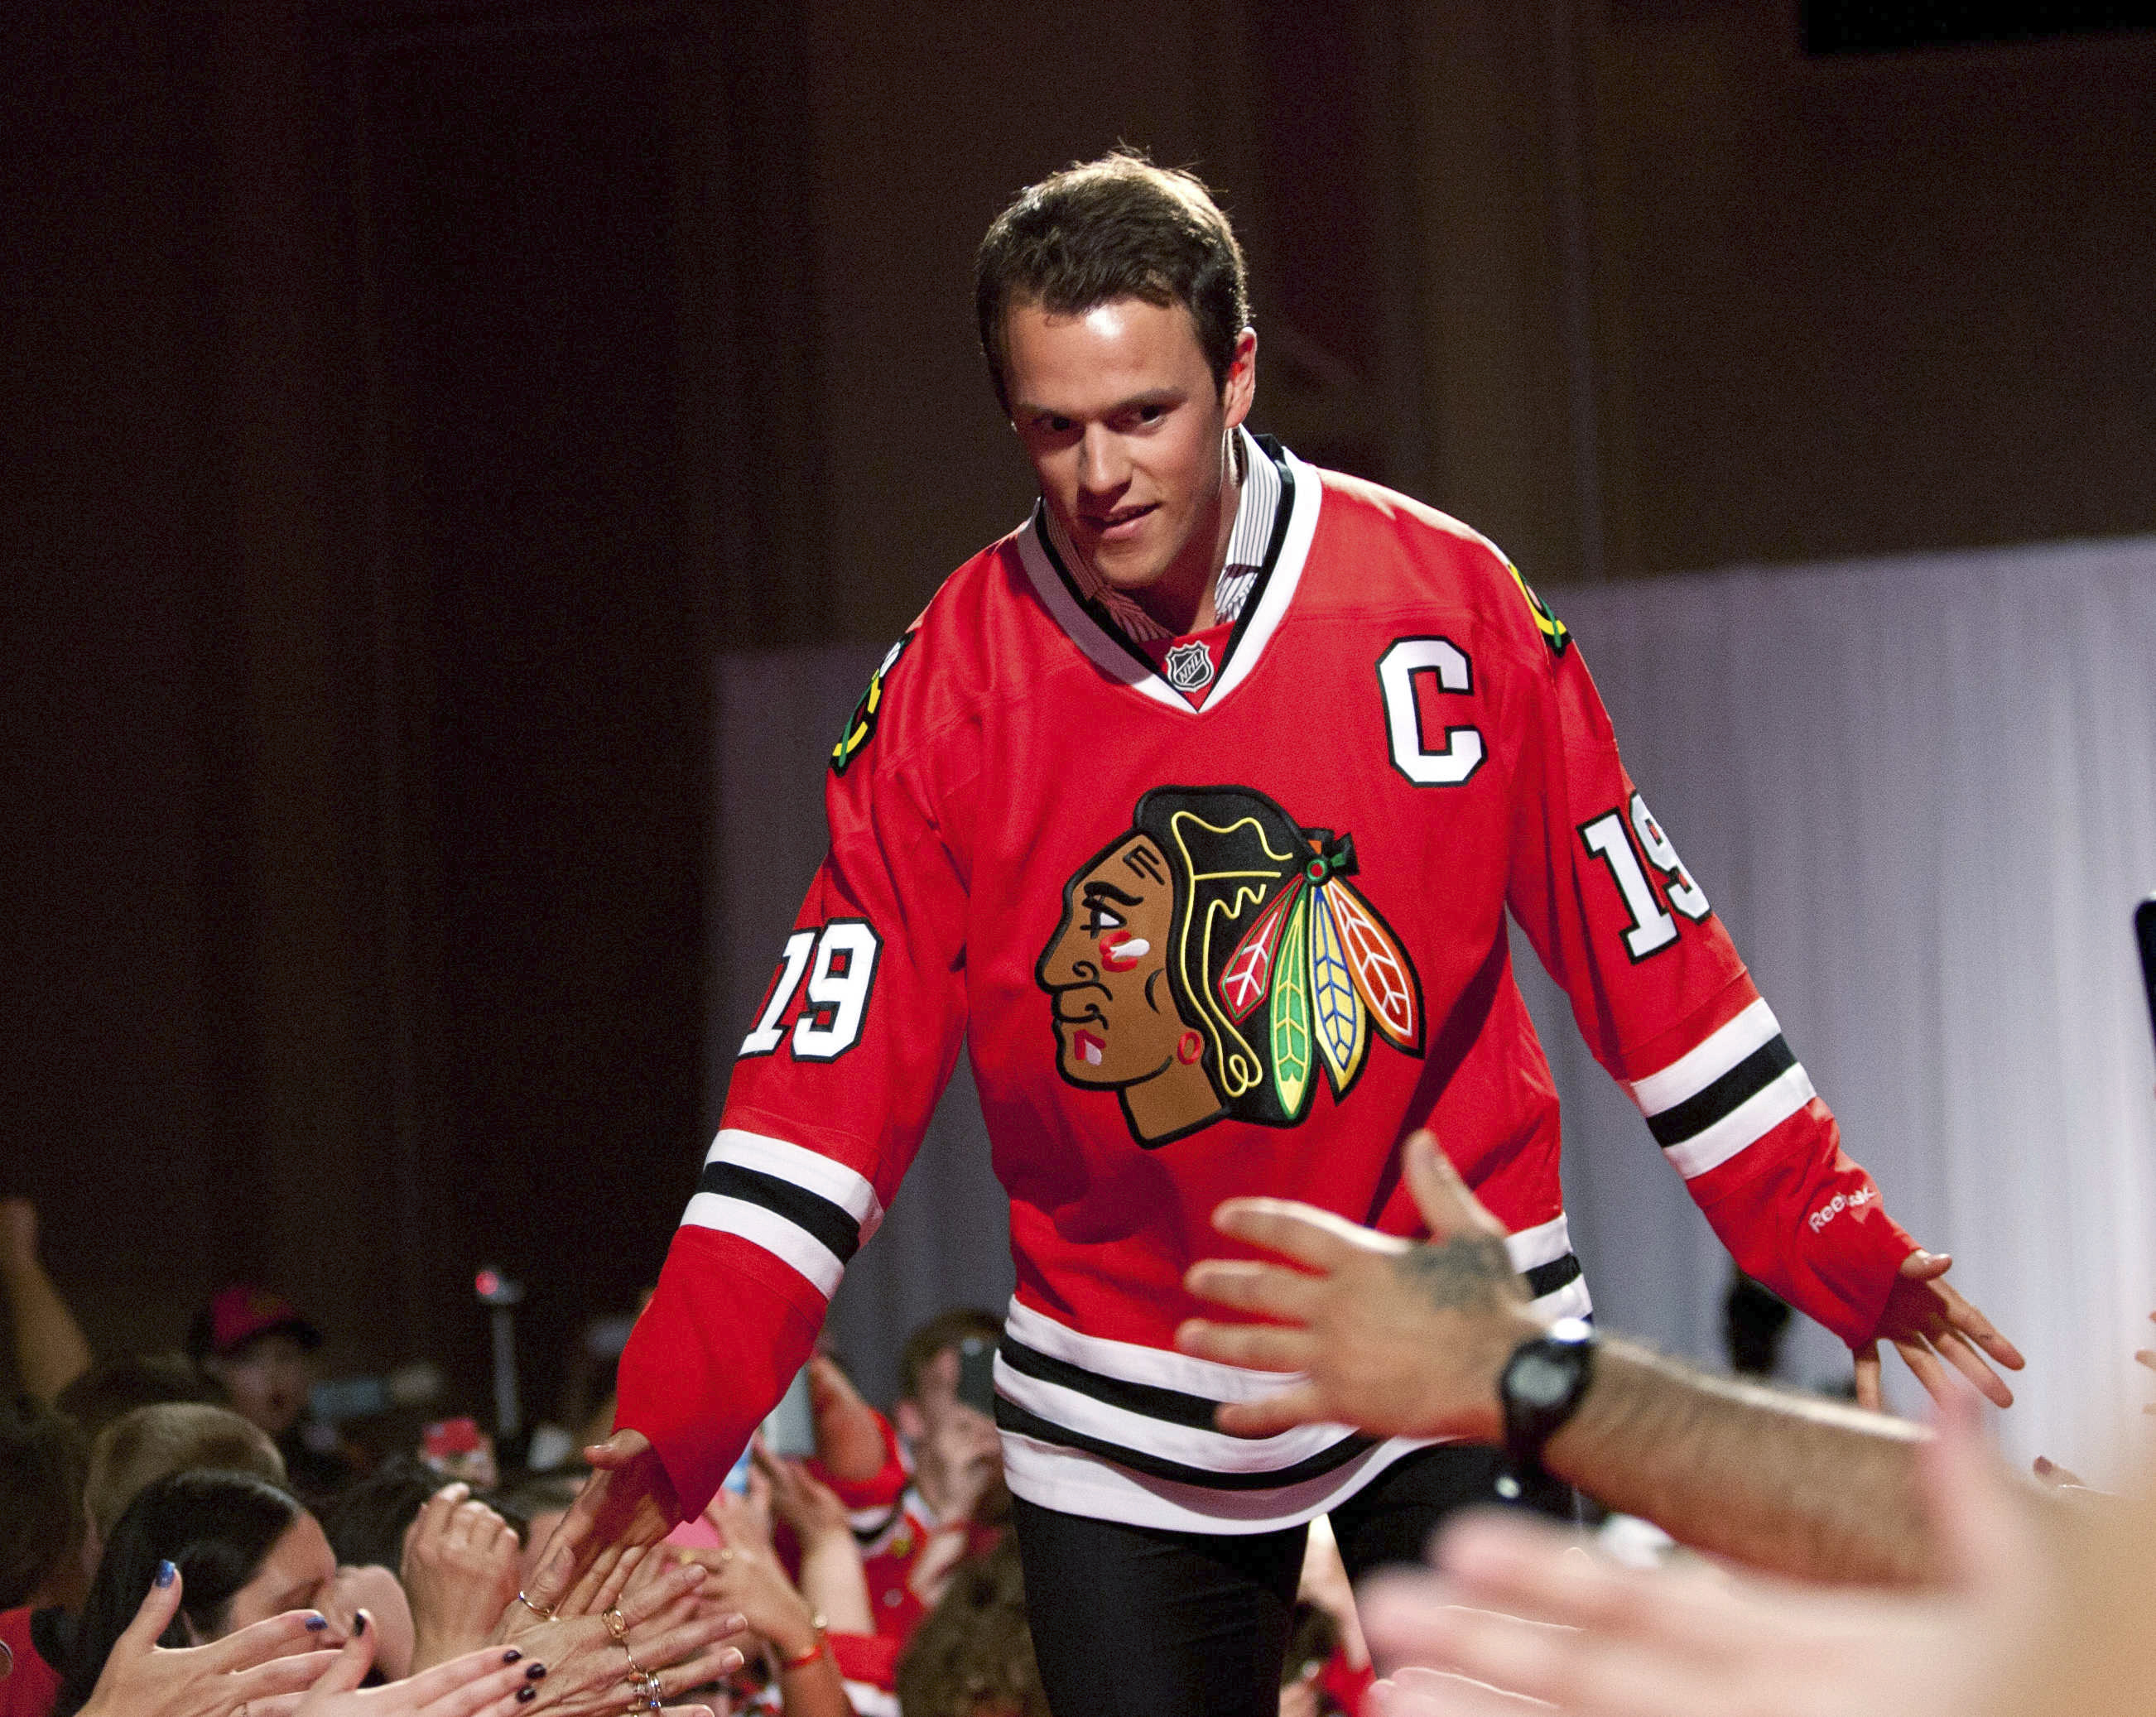 Chicago Blackhawks' Jonathan Toews greets fans during the NHL hockey team's annual convention, Friday, July 17, 2015, in Chicago. (Daniel White/Daily Herald via AP)